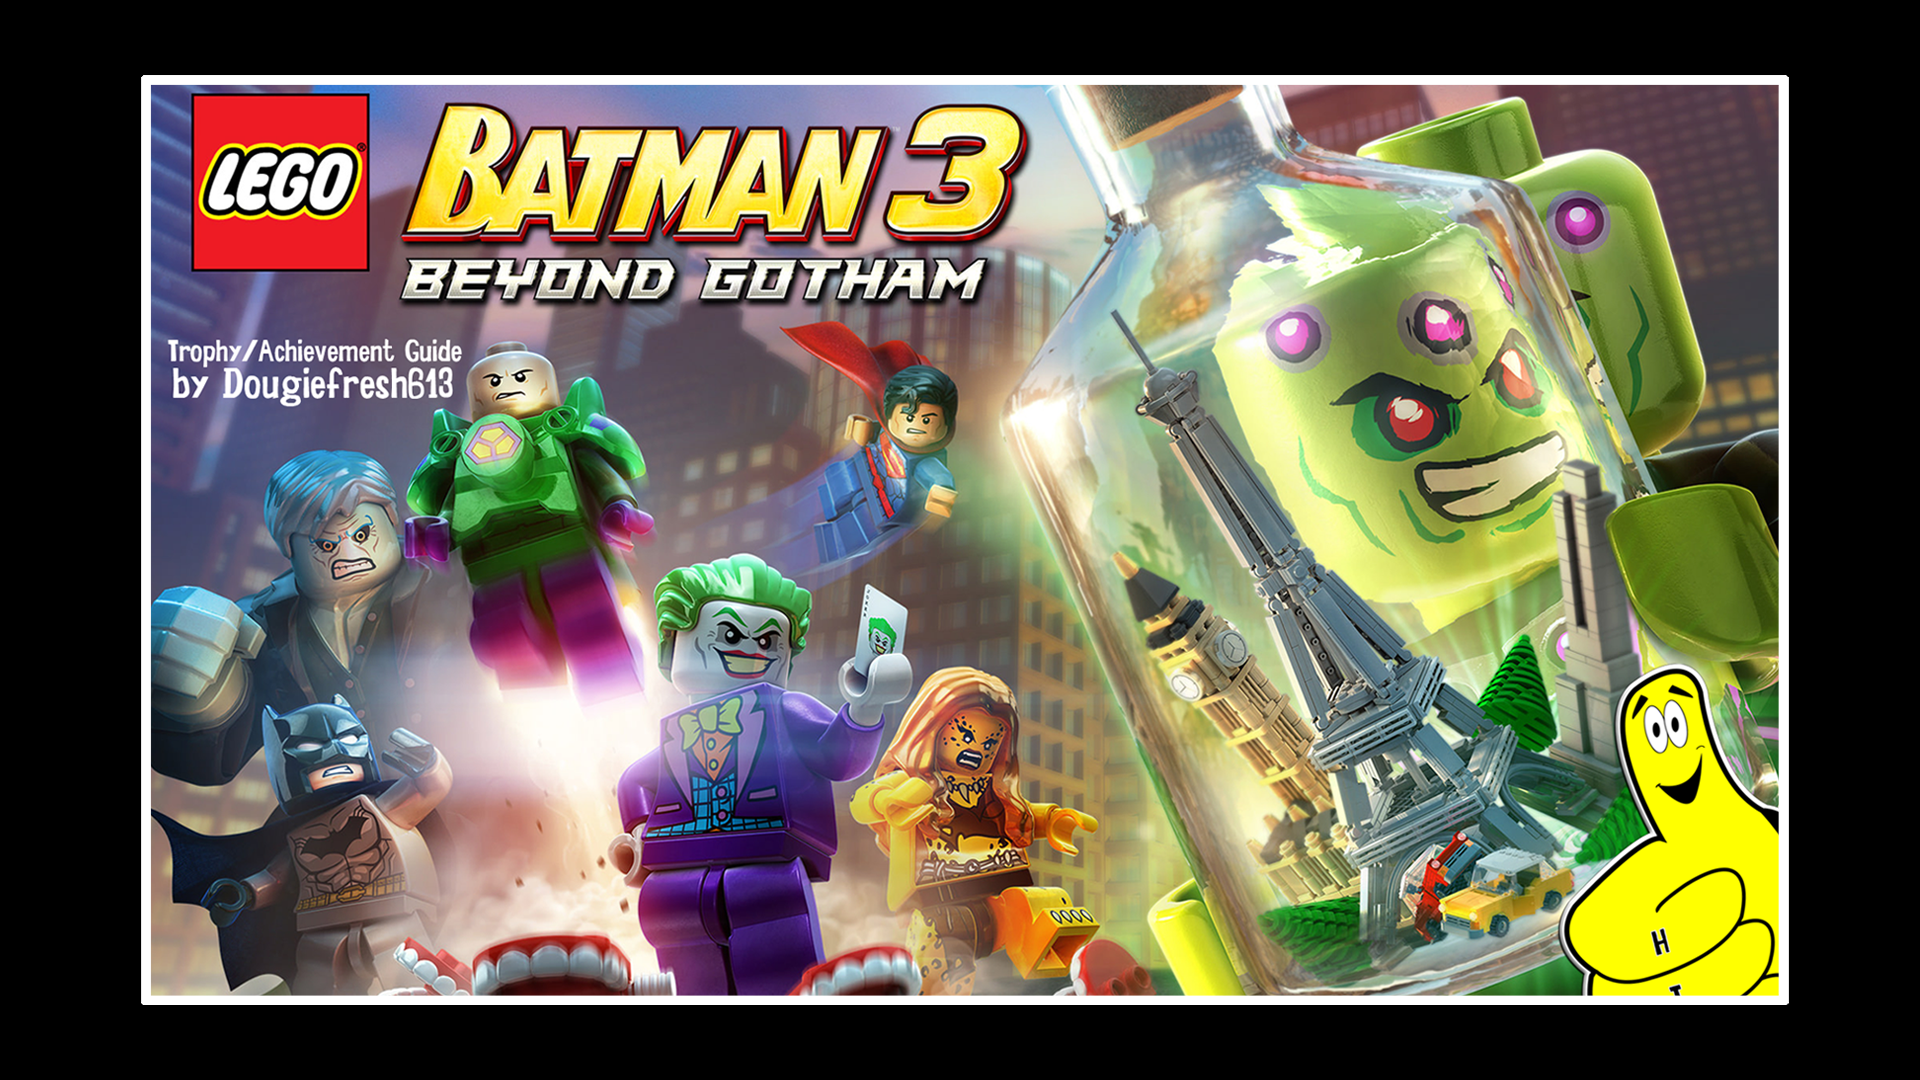 LegoBatman3-Featured